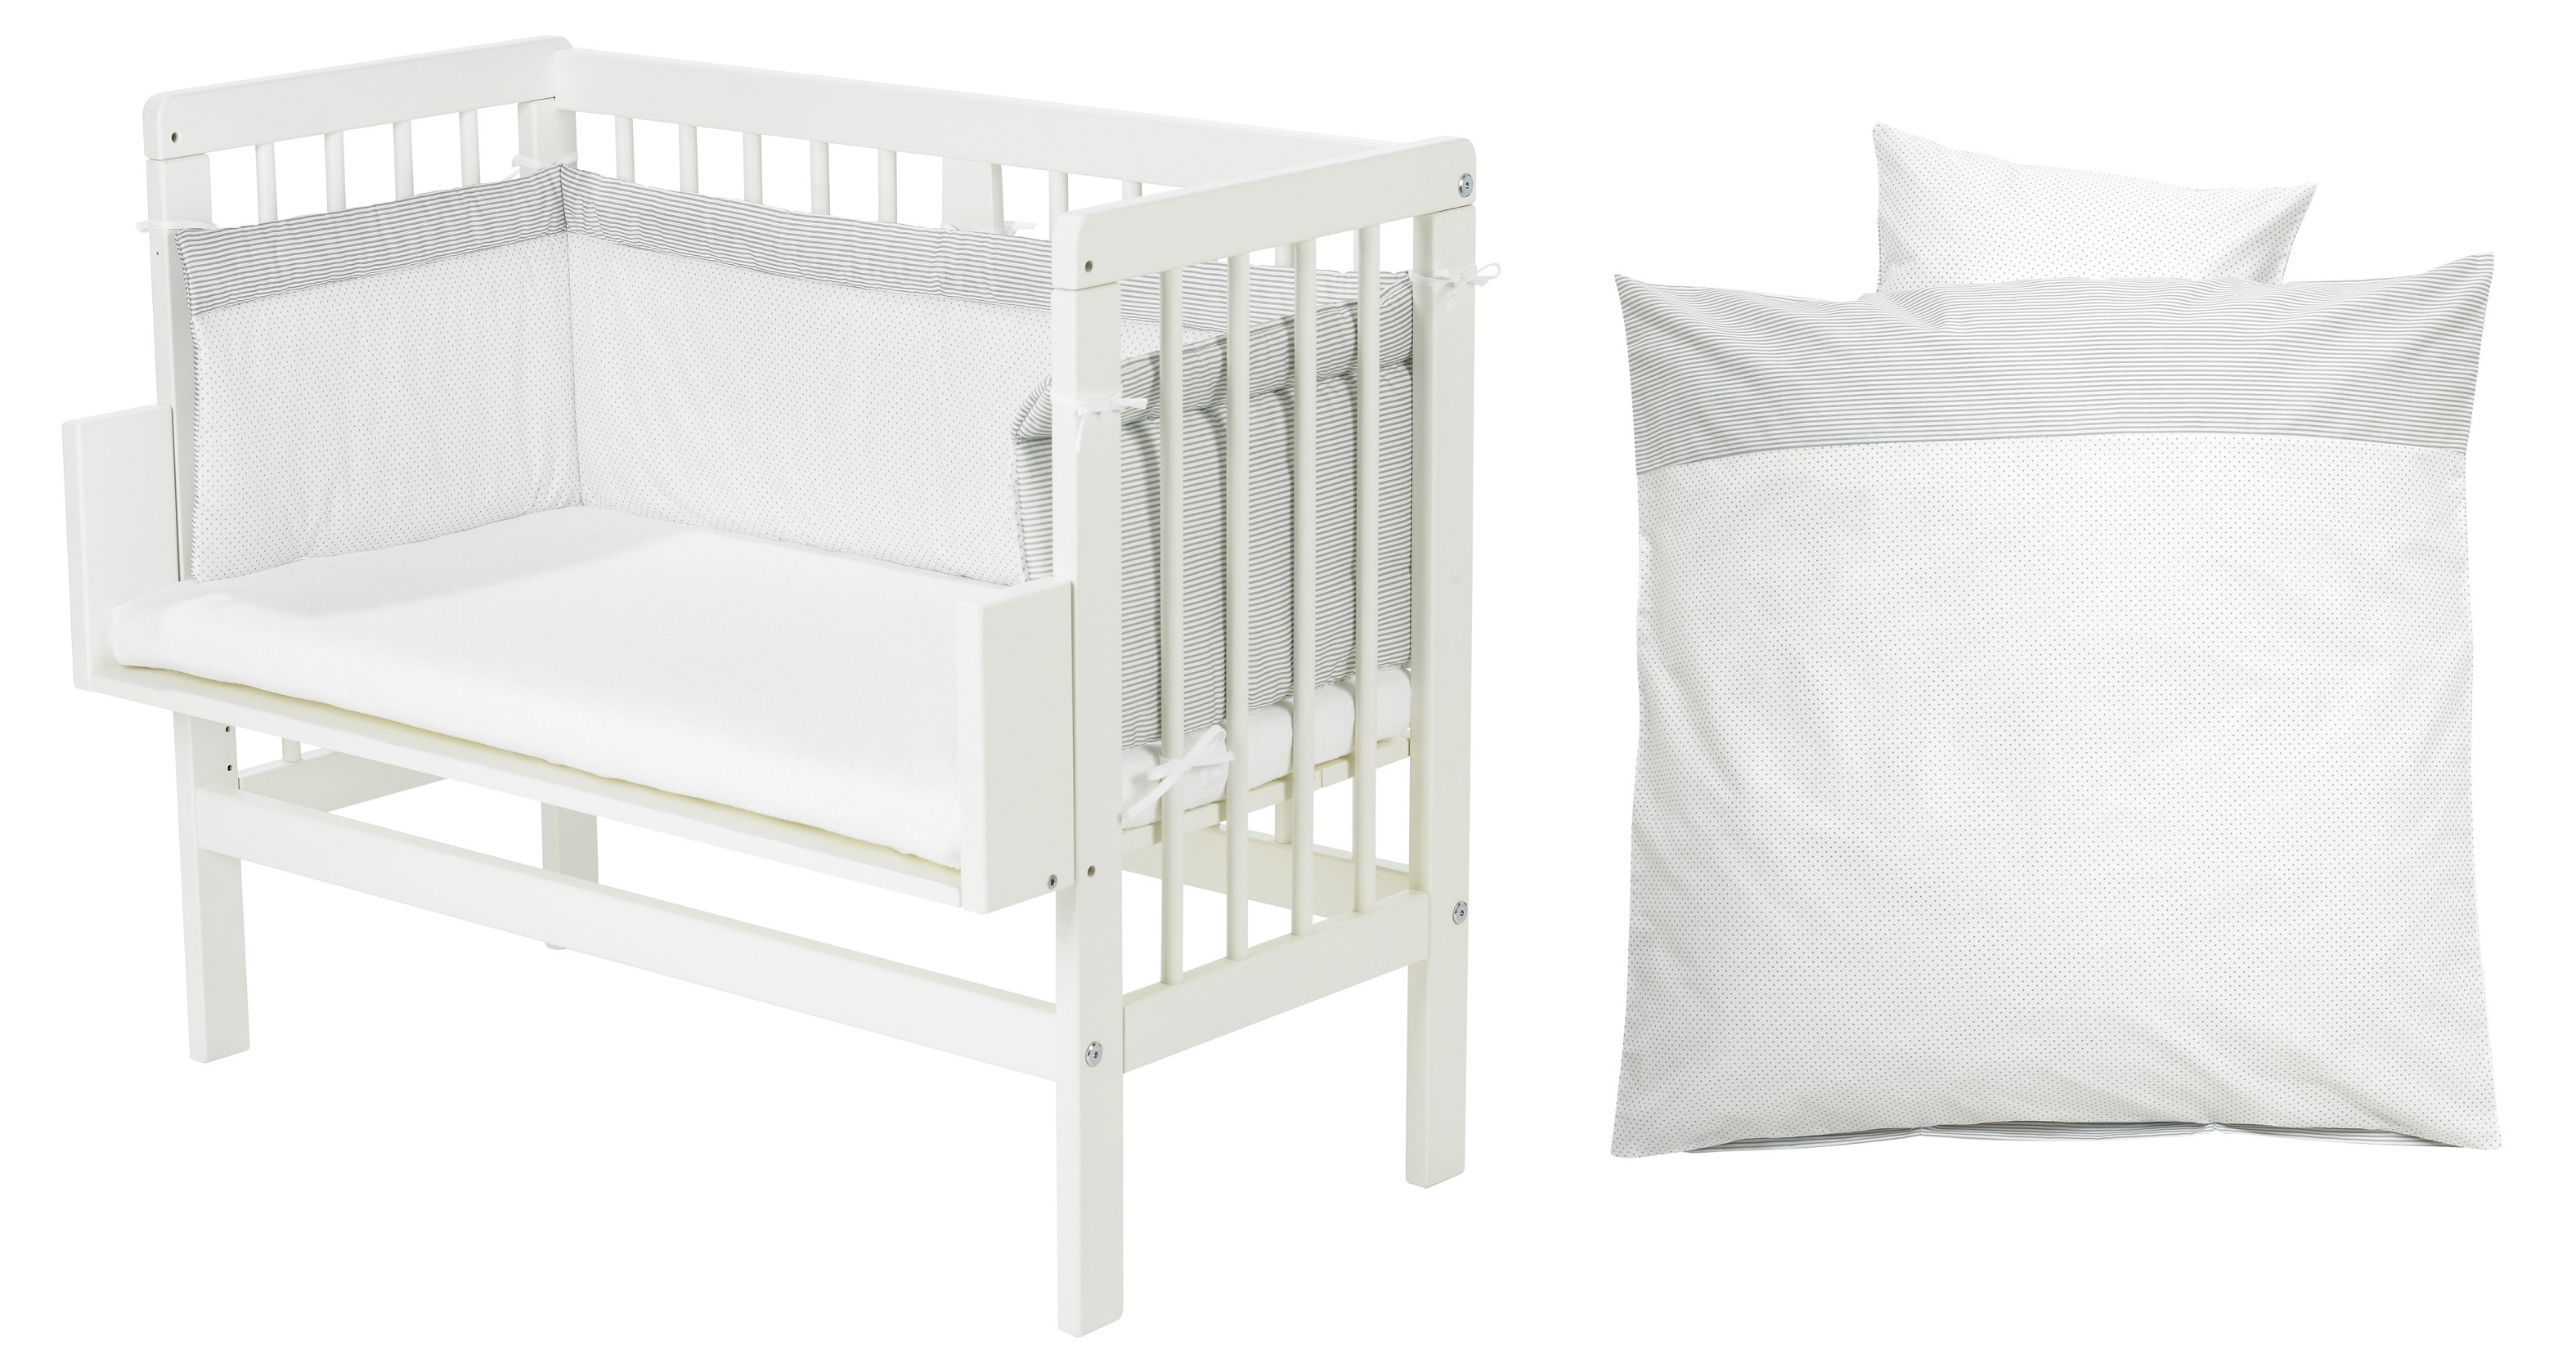 Cost Of Crib Mattress Crib Mattress Cost Crib Mattresses For Sale Baby Crib Mattresses Compare